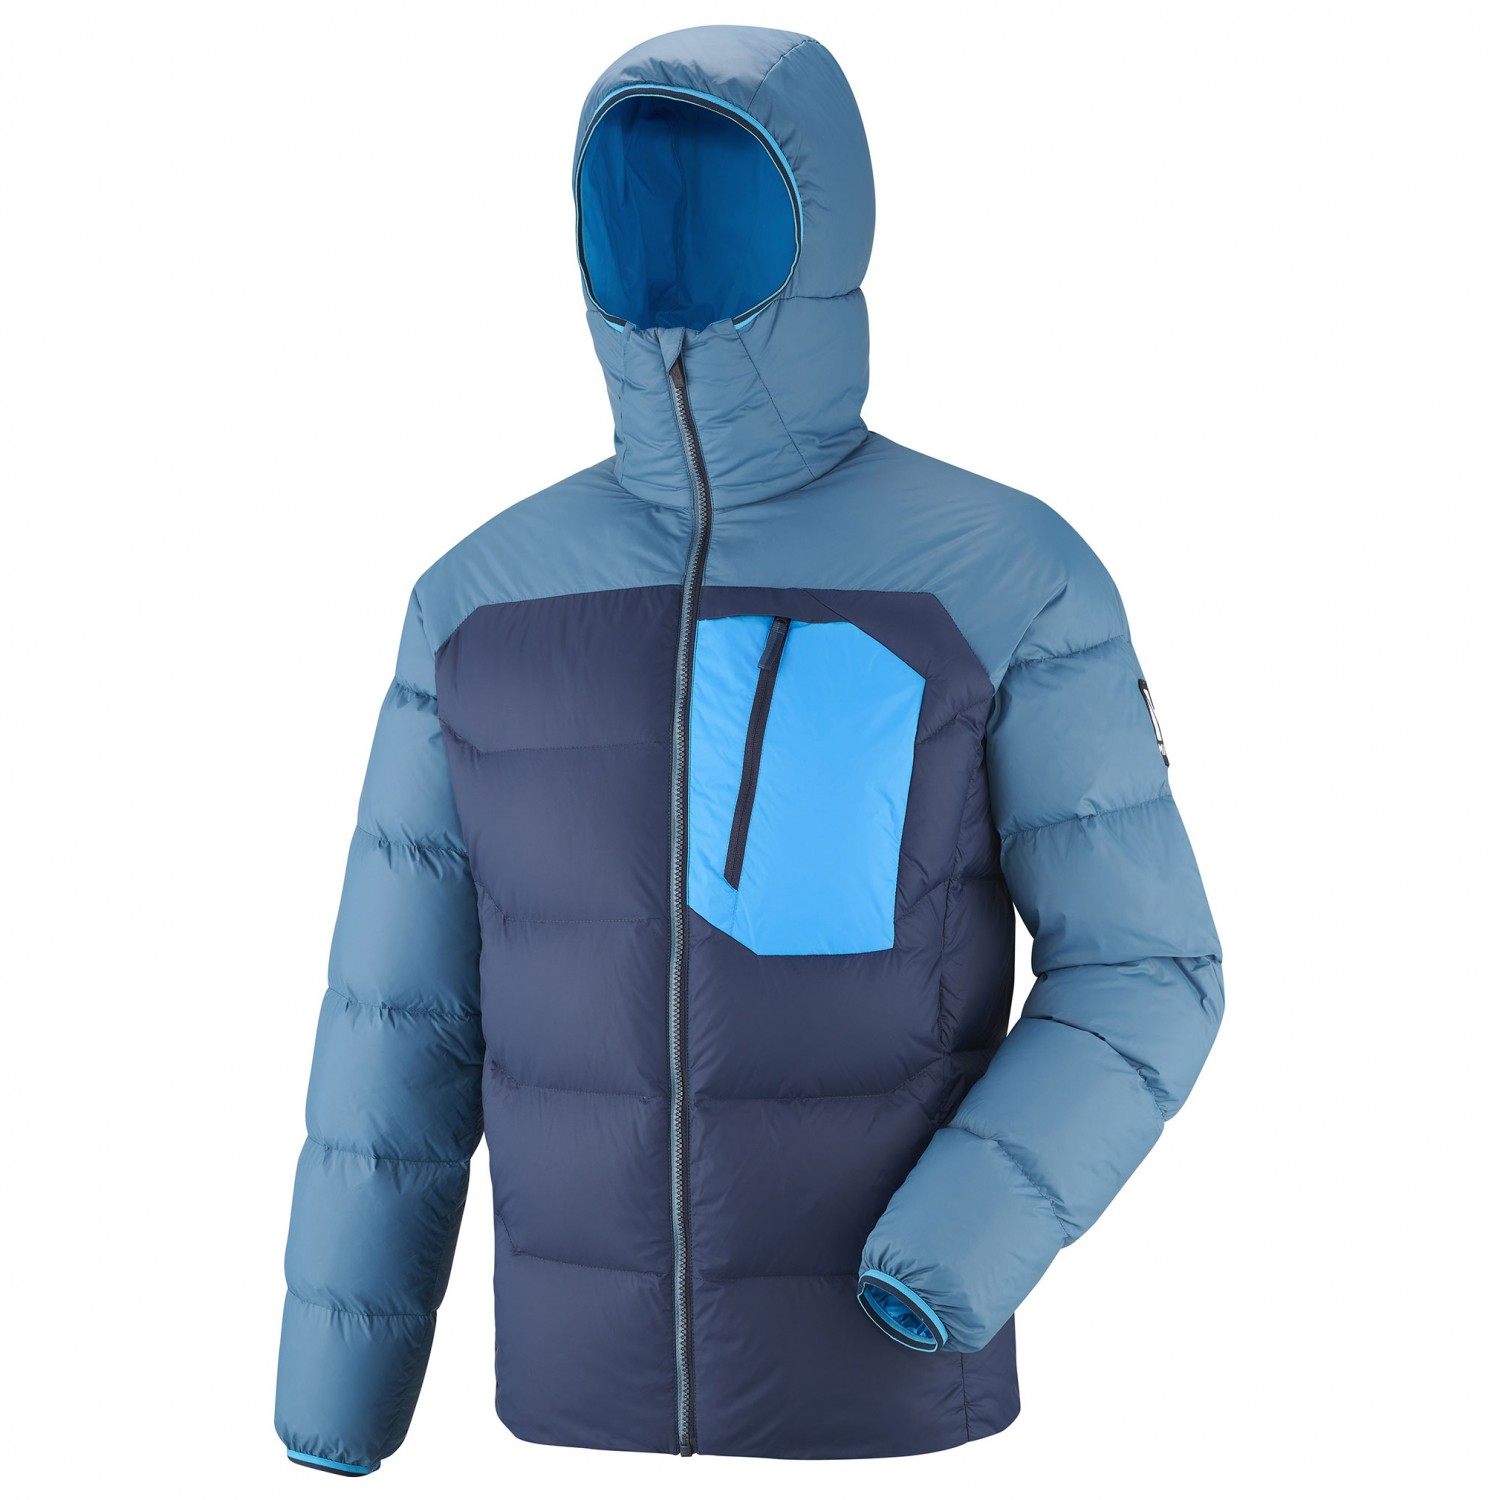 reputable site 53104 5d5a8 Millet 8 Seven Down Jacket - Giacca in piumino Uomo ...